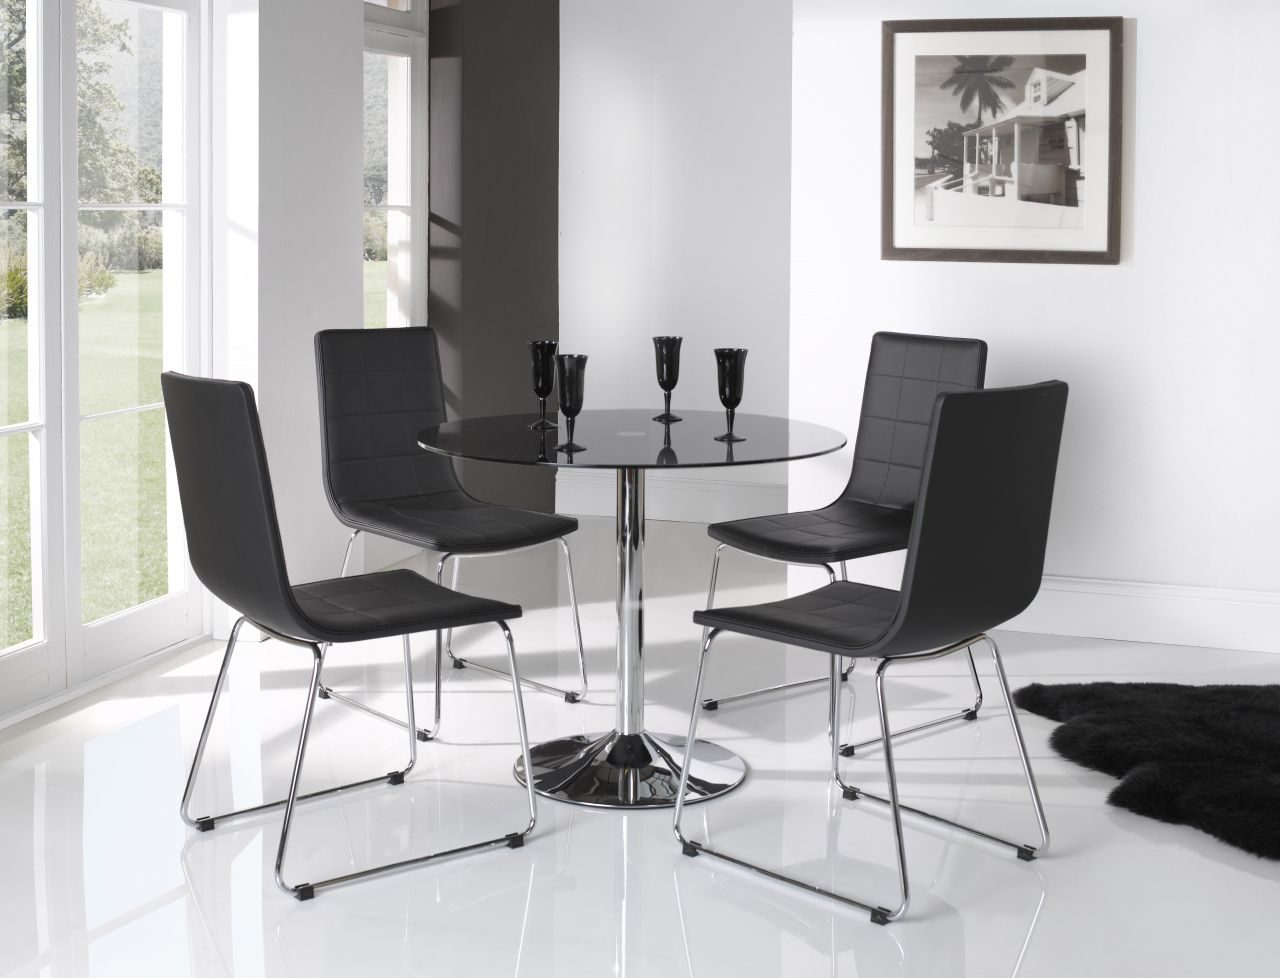 Small Round Glass Table and Chairs - Home Office Desk Furniture ...